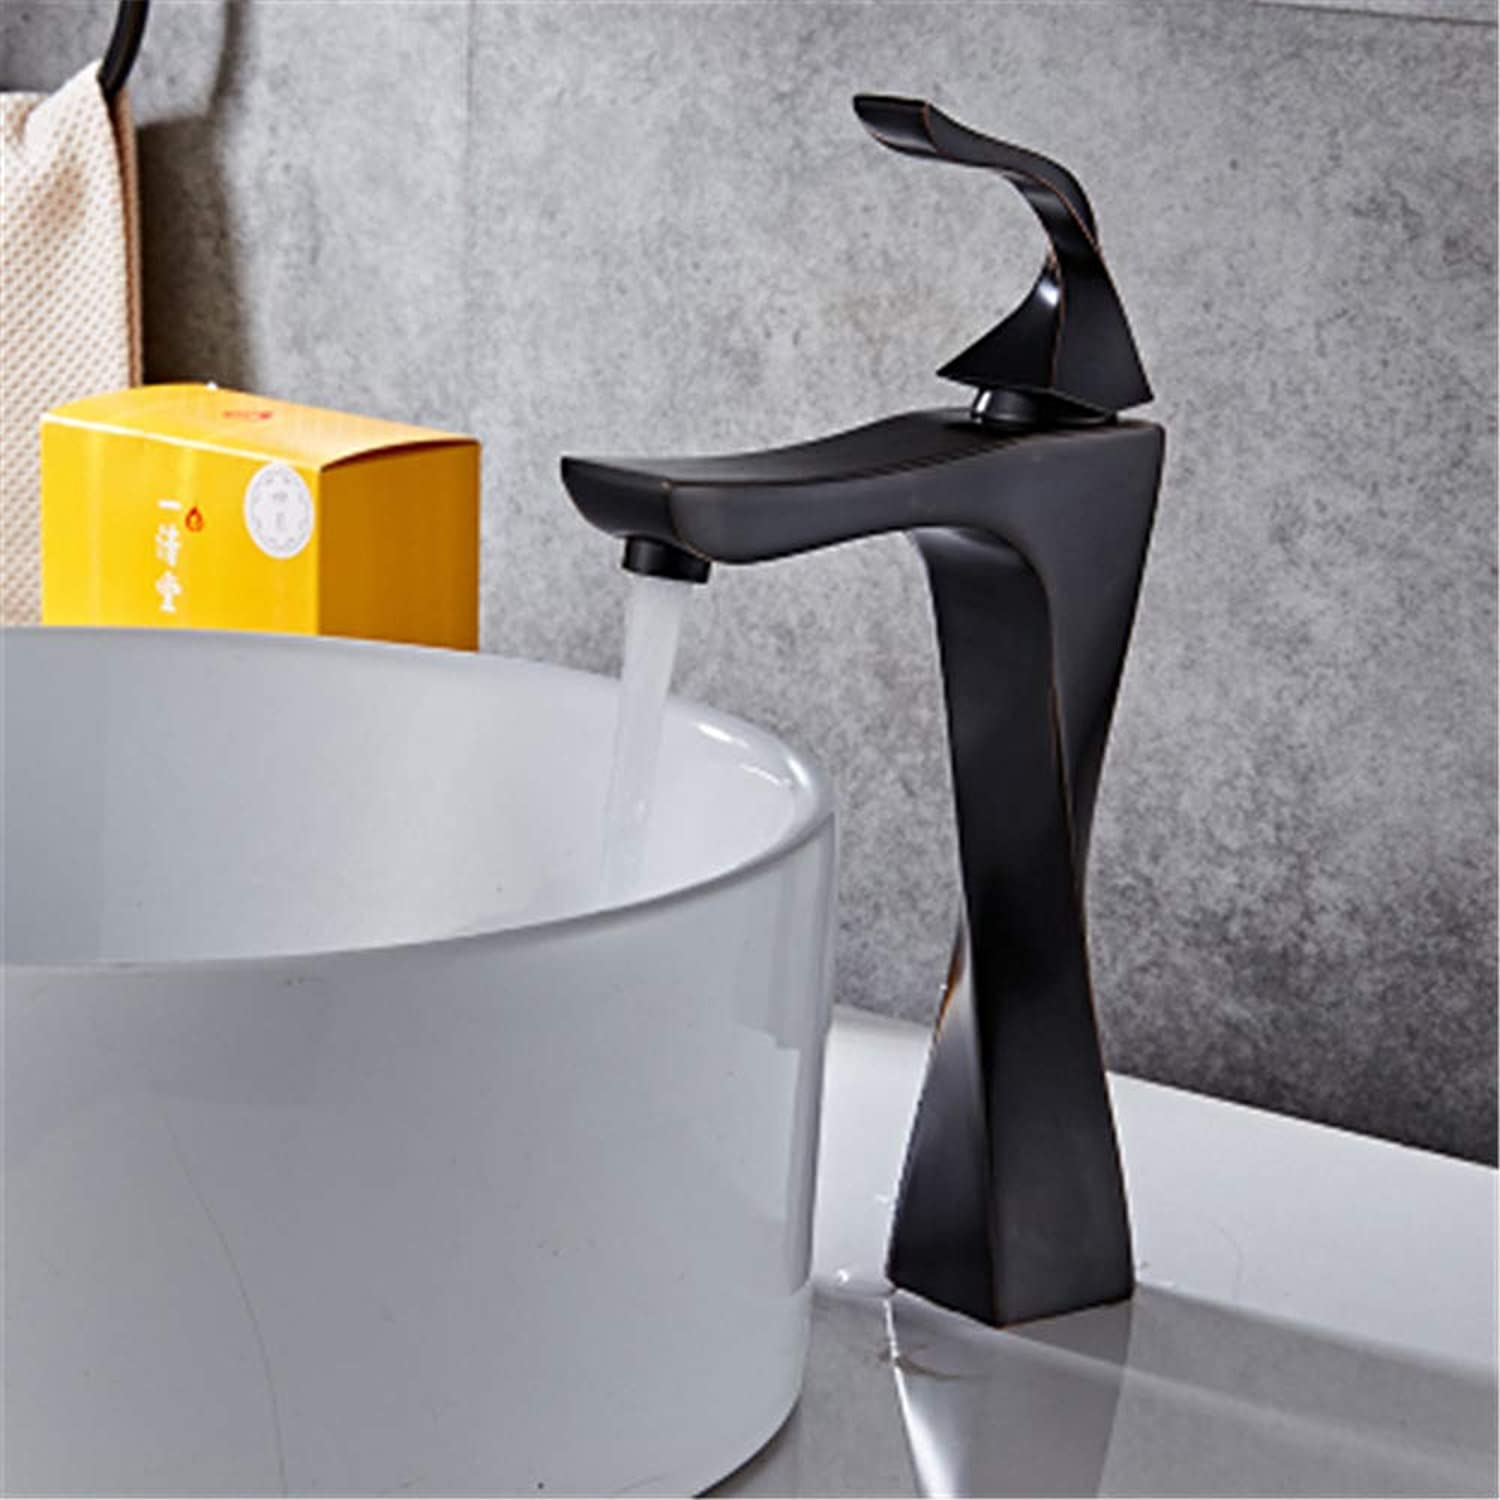 PajCzh Taps Taps Faucet Faucet All-Copper European Black Bronze Faucet Heightened Faceplate Washbasin Hot And Cold Water Faucet, A, 1